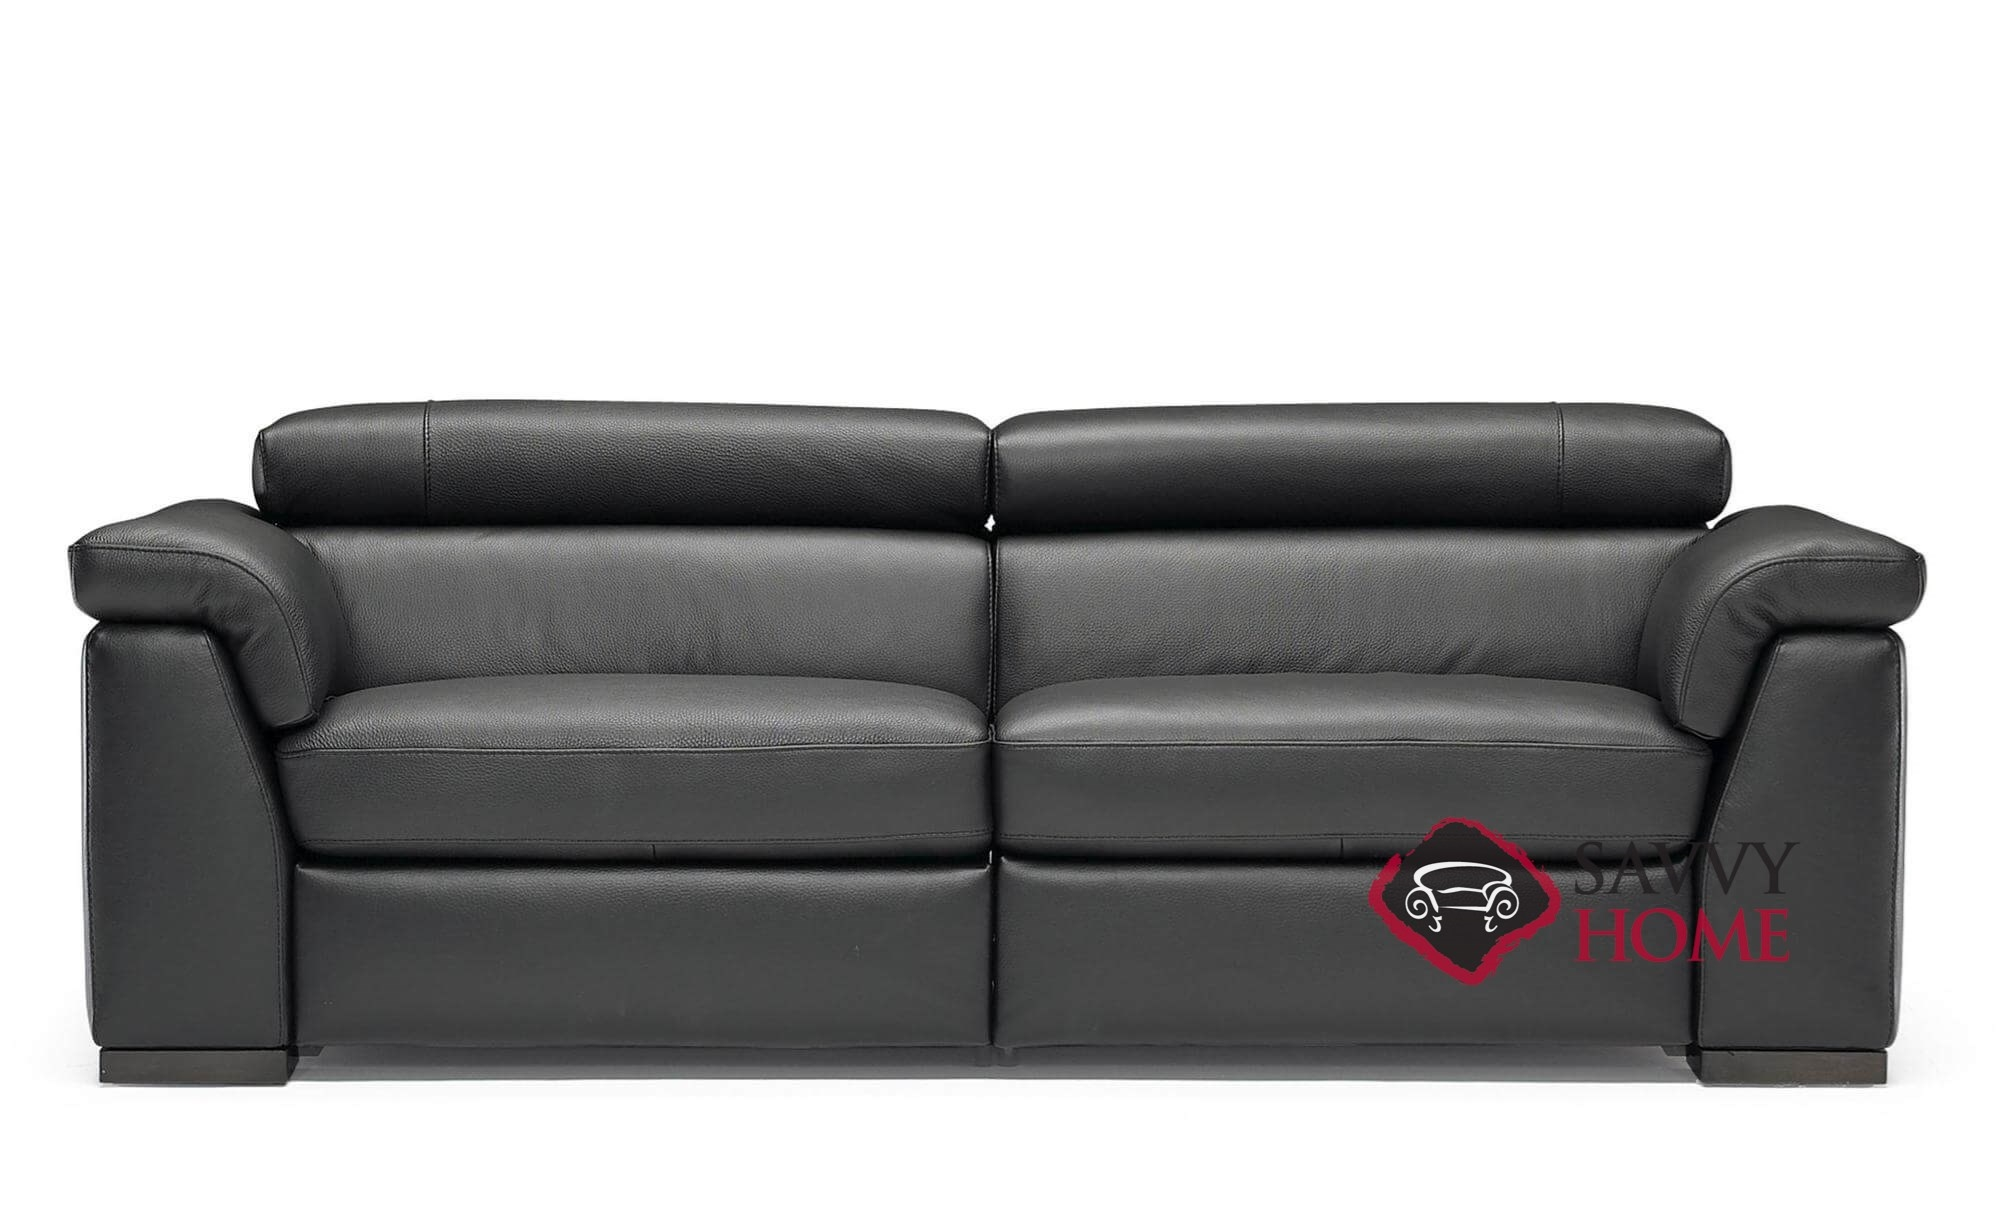 Tommaso (B634-T66) Power Reclining Leather Sofa by Natuzzi